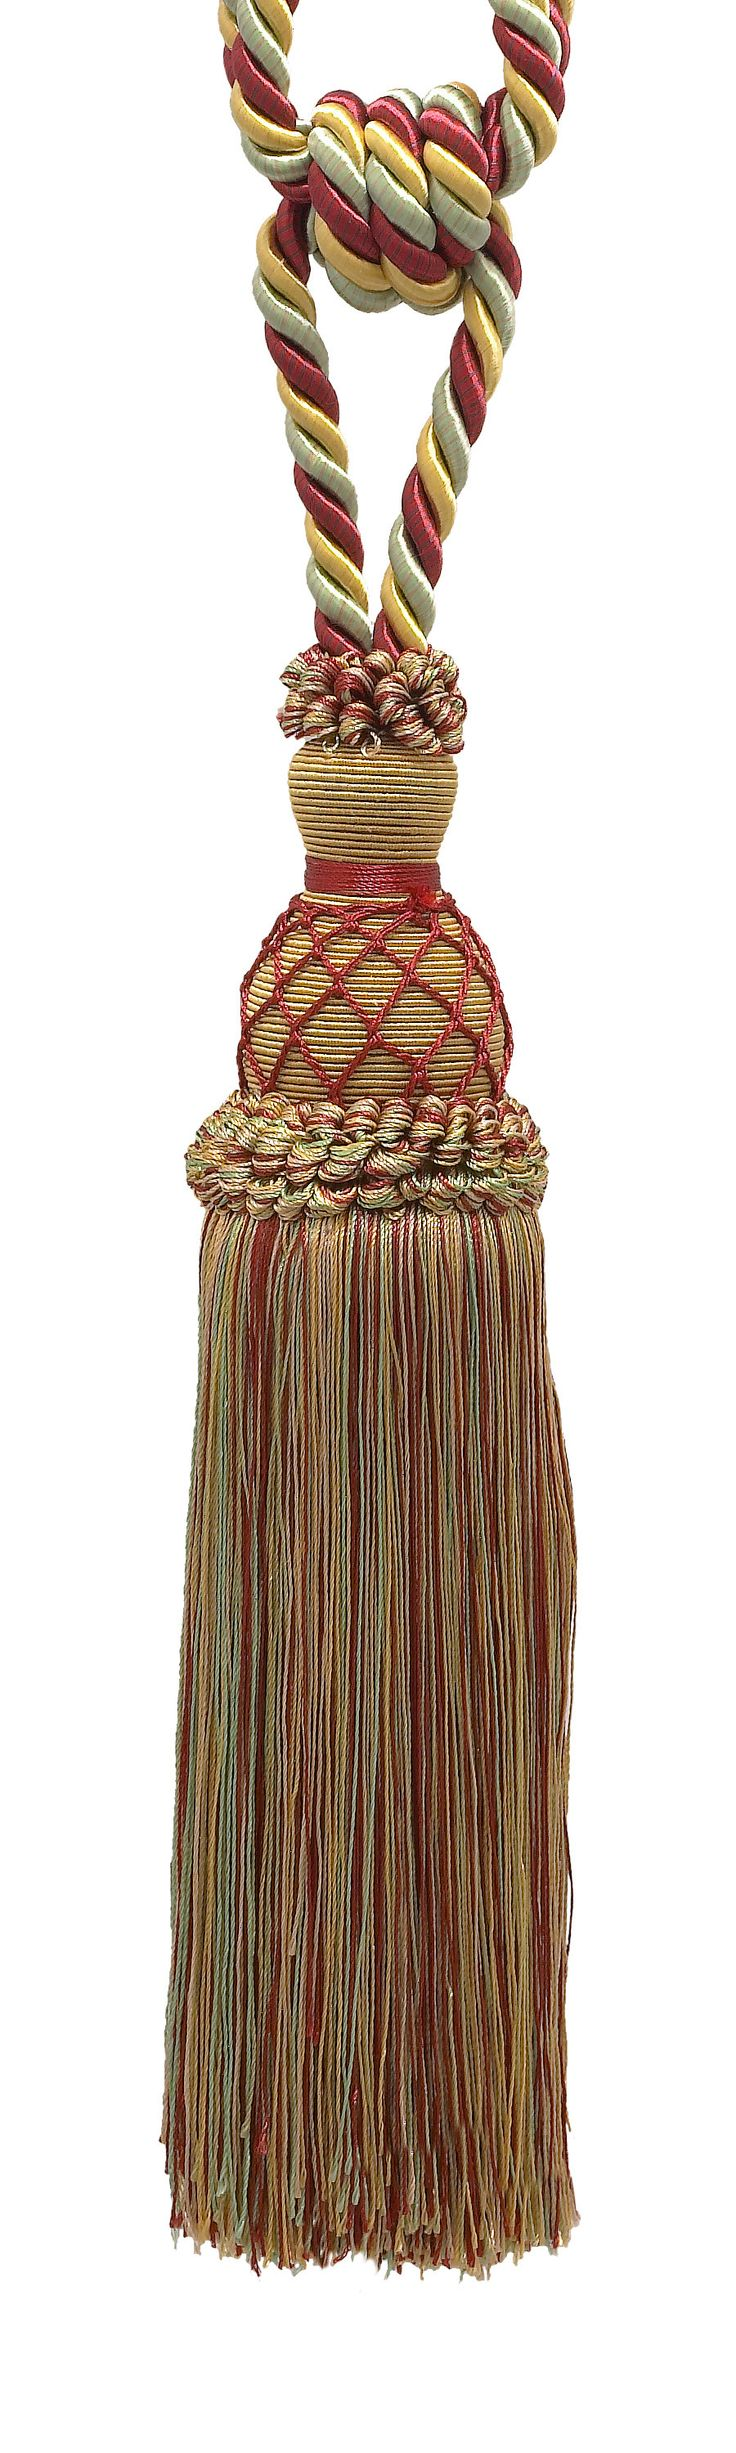 "Elegant Gold, Red, Green Curtain & Drapery Tassel Tieback / 10"" tassel, 30 1/2"" Spread (embrace), 3/8"" Cord, Imperial II Collection Style# TBIN-1 Color: HOLIDAY SPLENDOR - 3752"